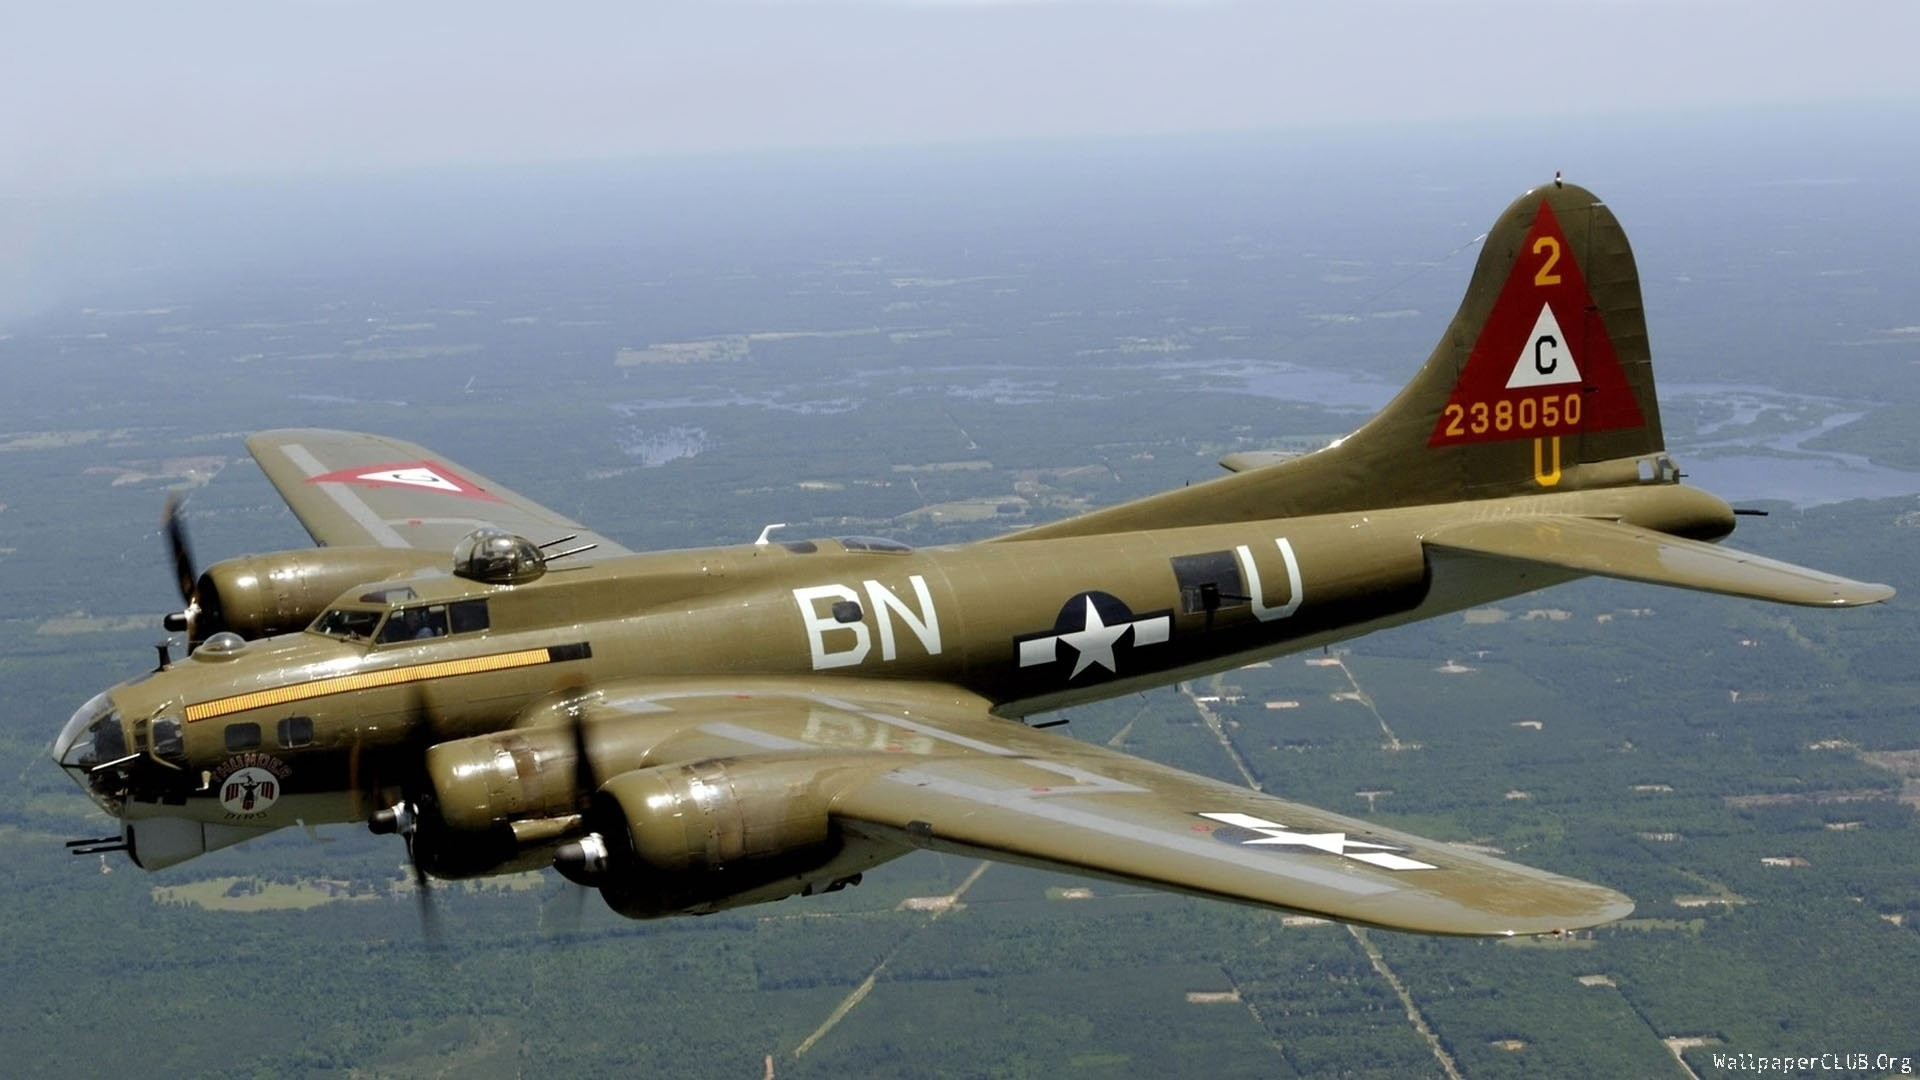 Military – Boeing B-17 Flying Fortress Air Force Aircraft Airplane Wallpaper